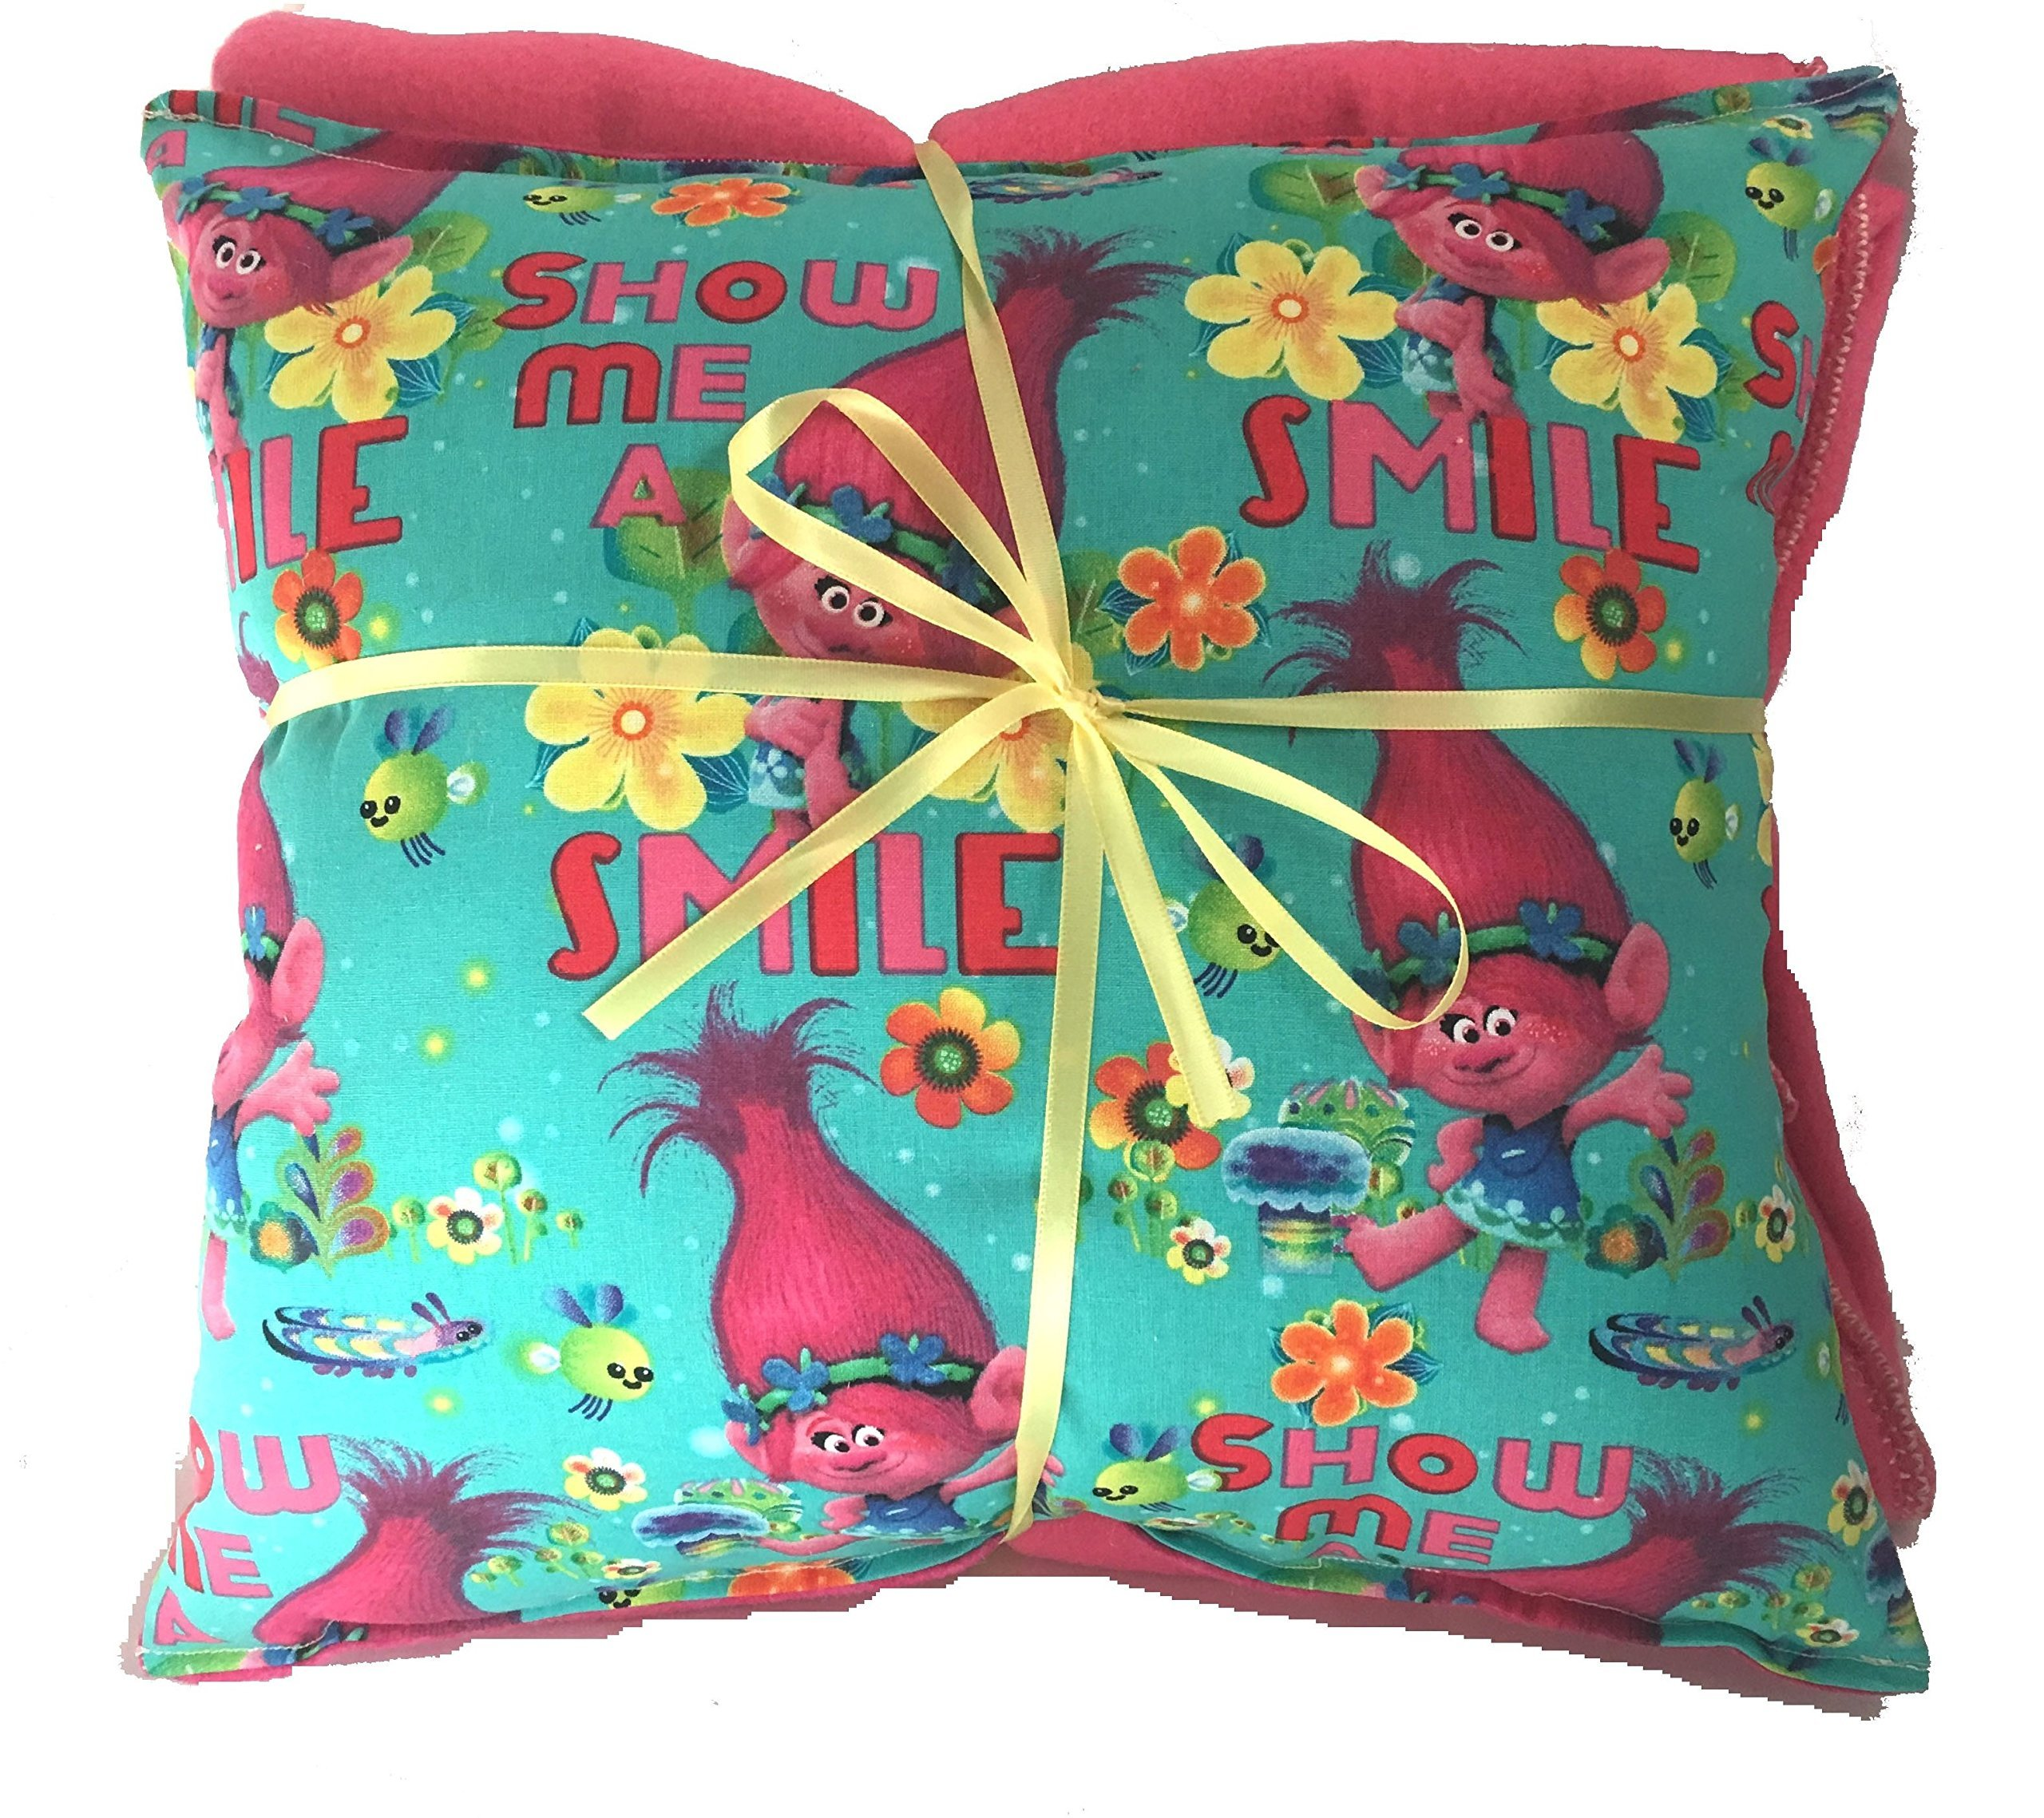 Troll Smile Pillow And Blanket Troll Movie Pillow and Blanket HANDMADE In USA Pillow Set